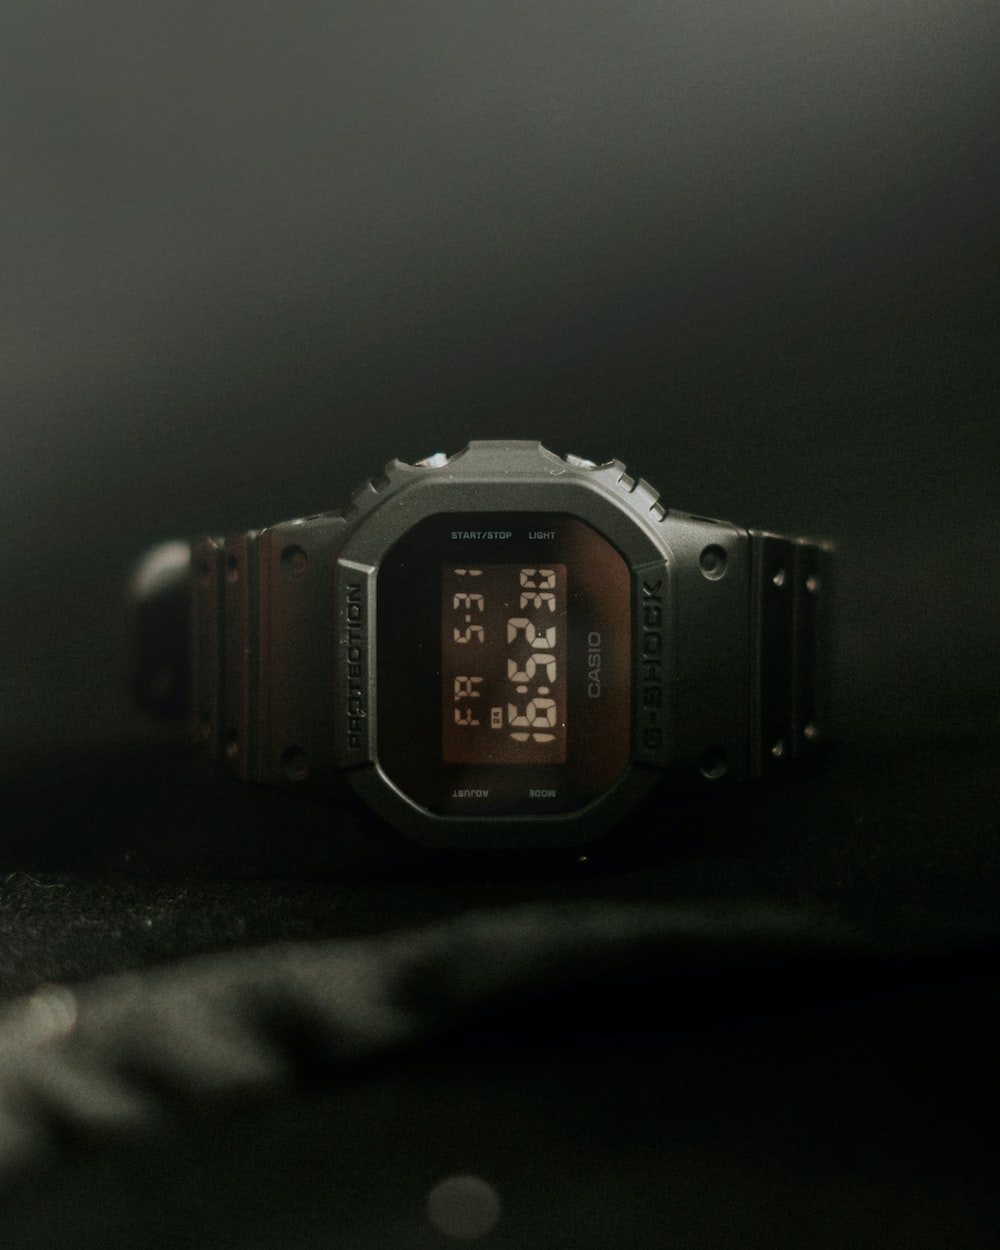 silver-colored digital watch